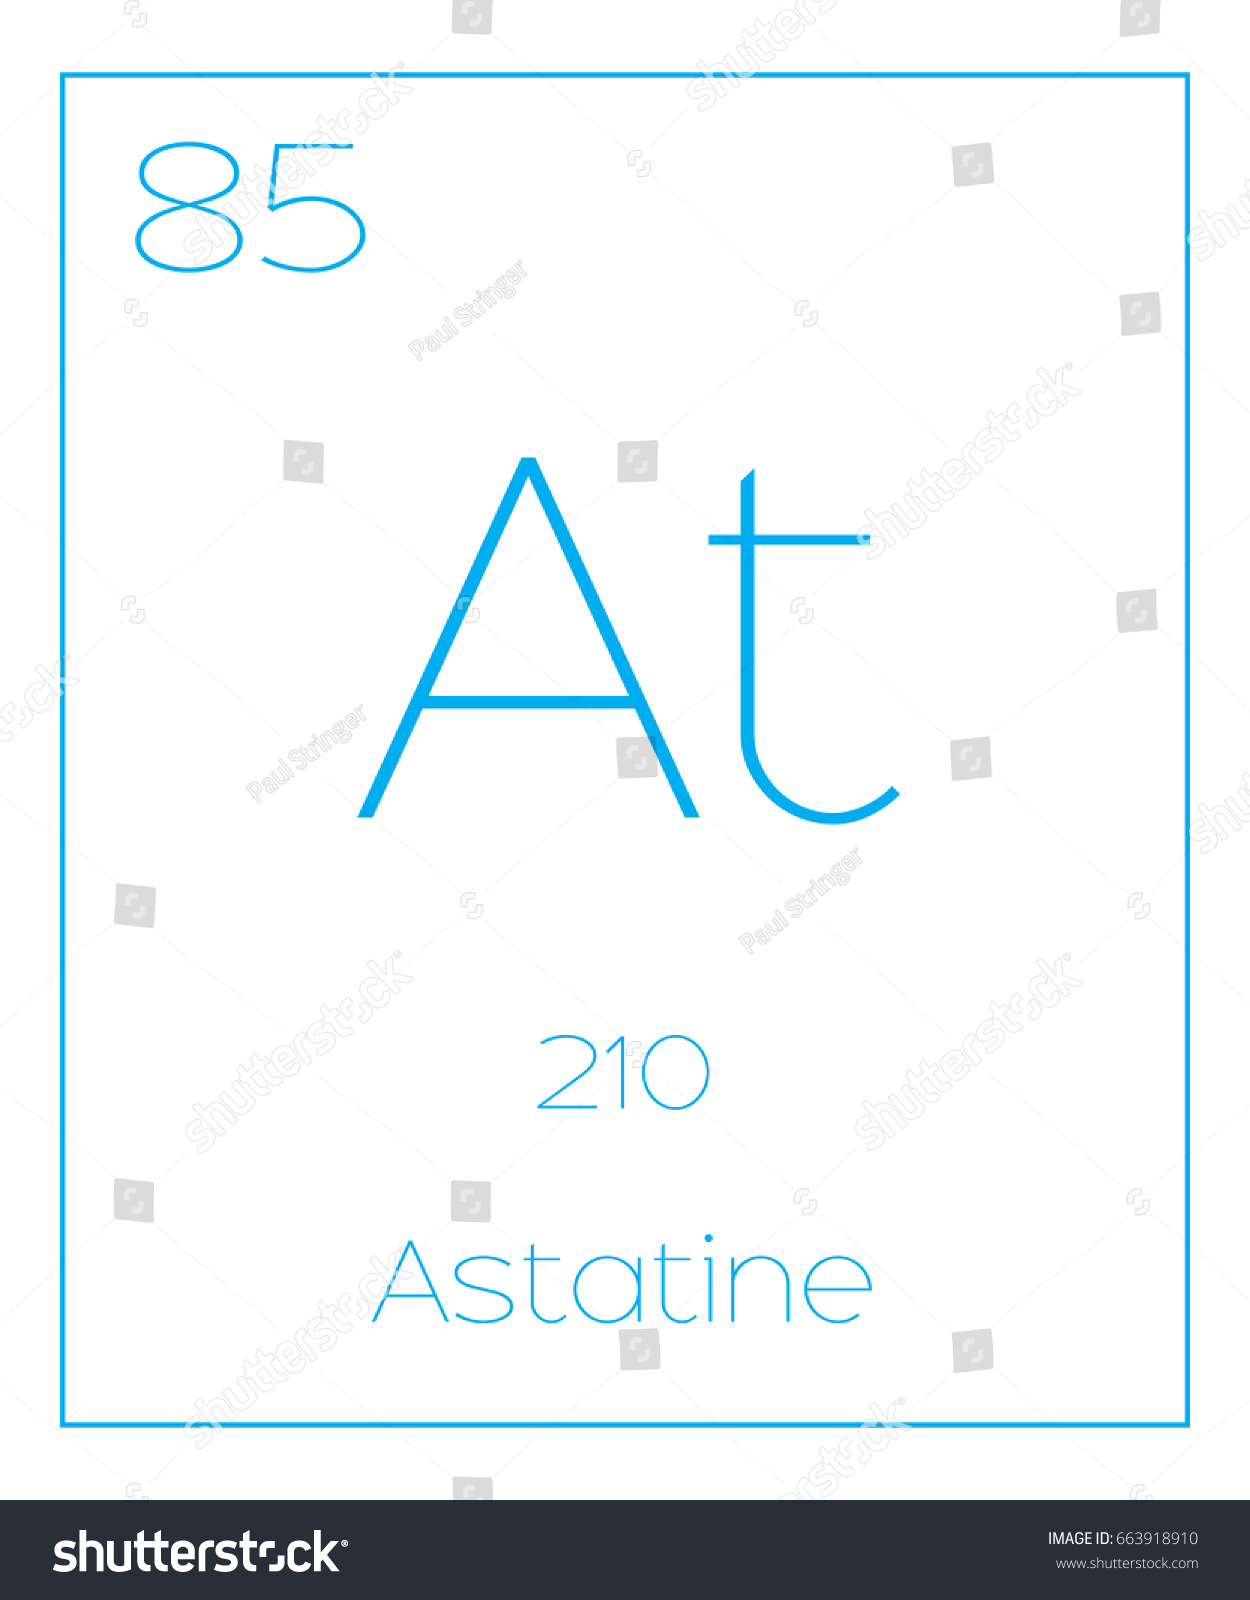 Telluric helix periodic table choice image periodic table images astatine on the periodic table images periodic table images astatine symbol periodic table choice image periodic gamestrikefo Gallery